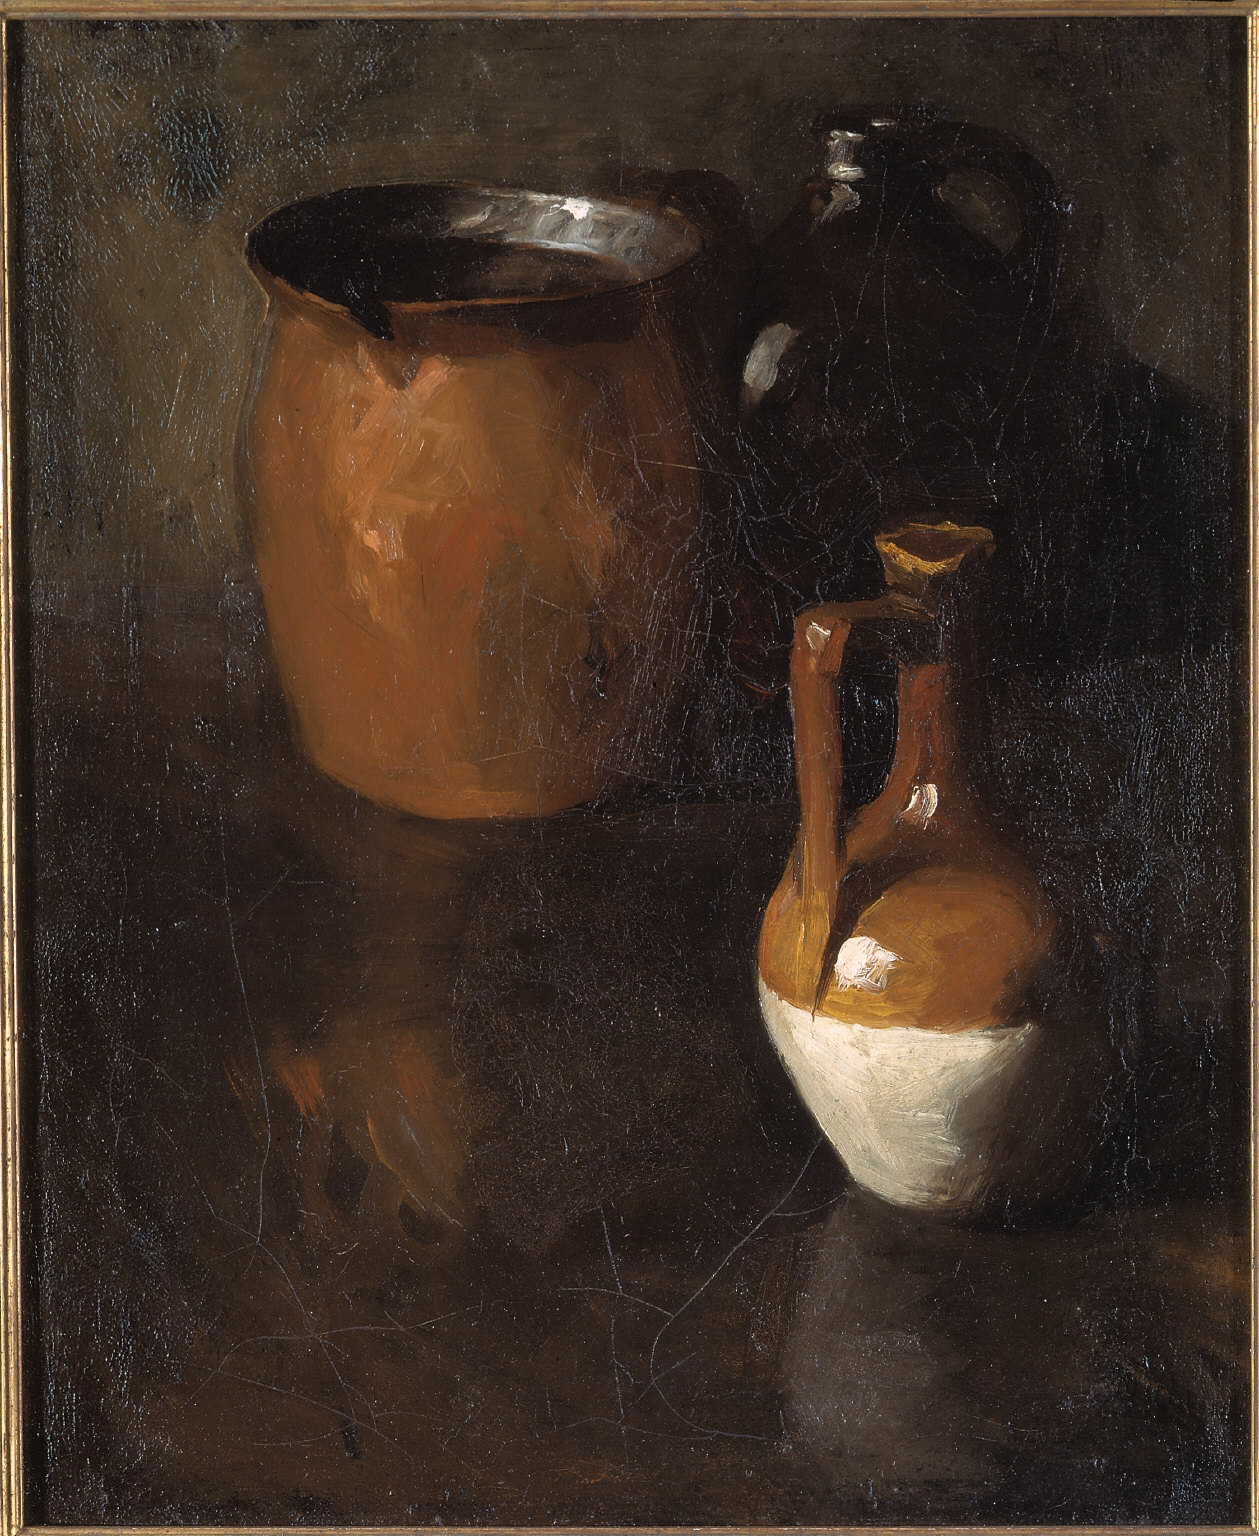 (Still Life with Earthenware Jug)